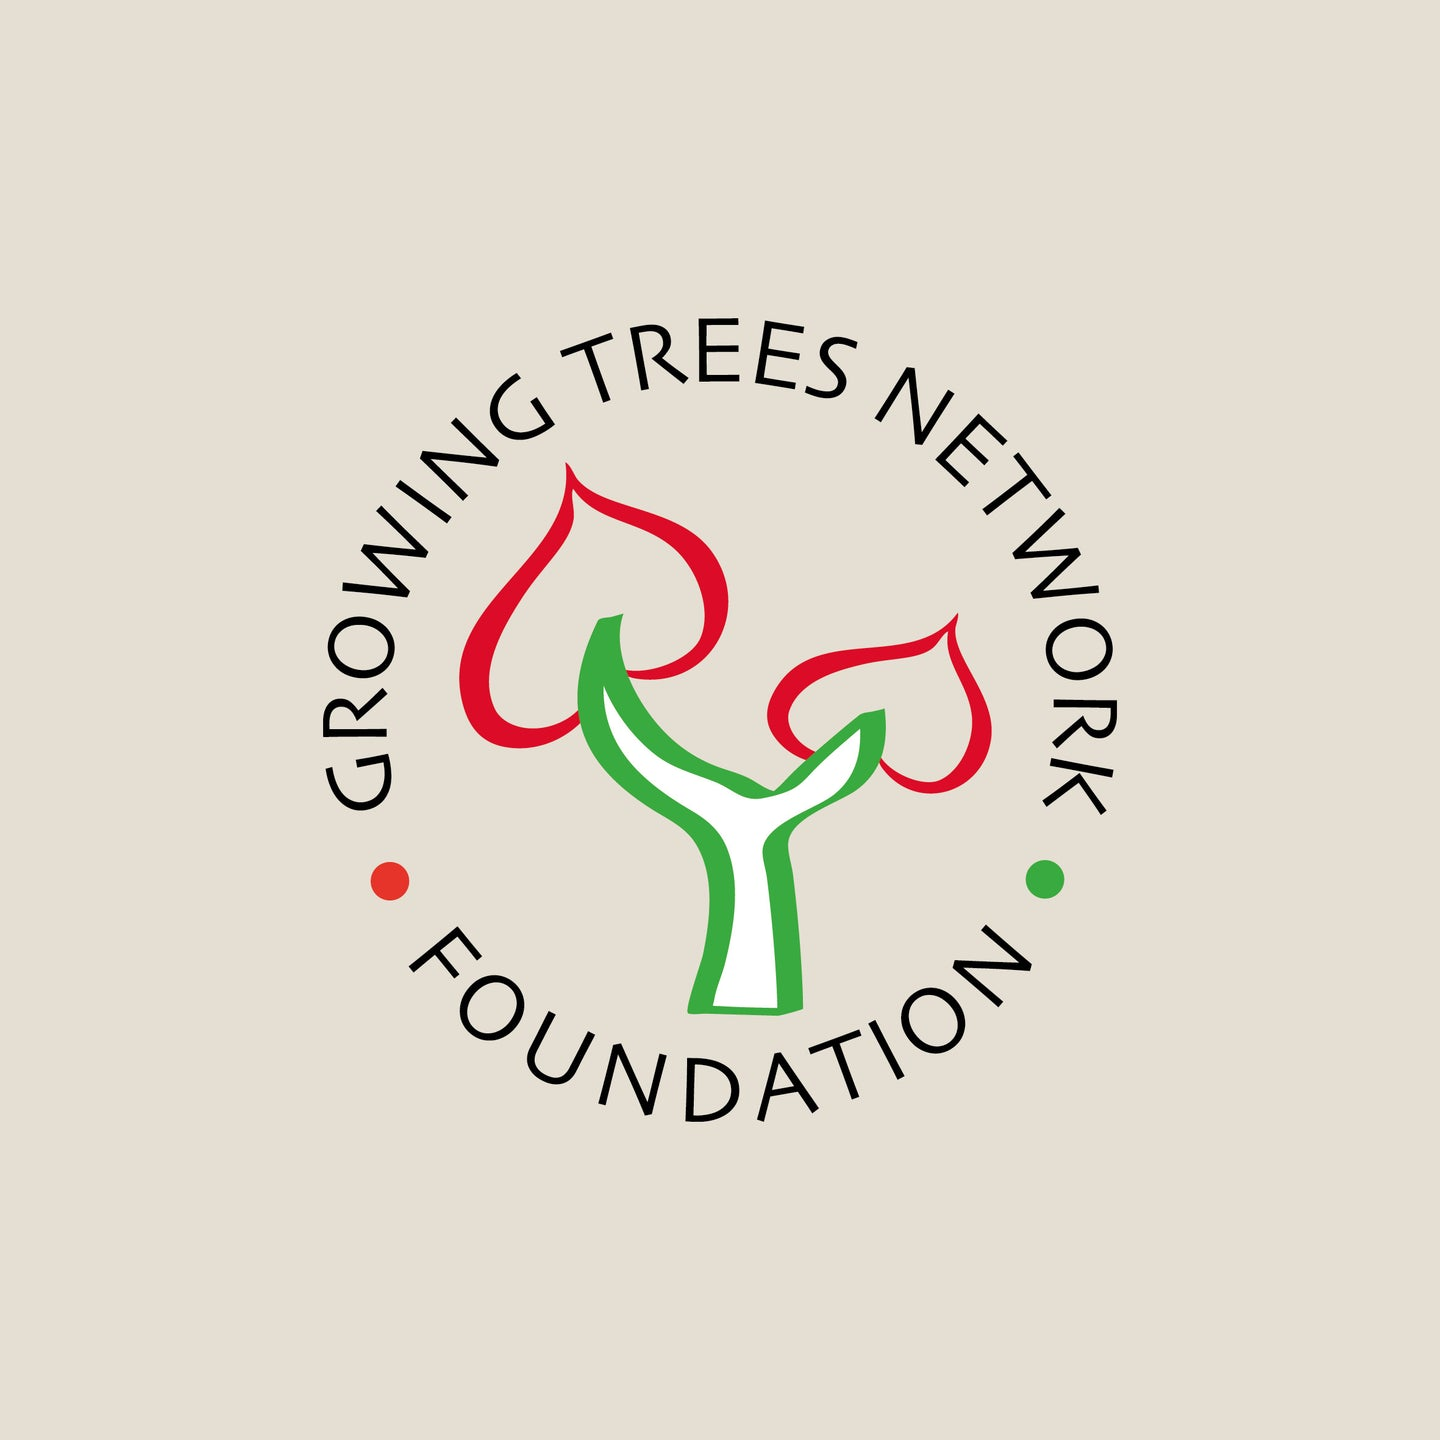 Growing Trees Foundation